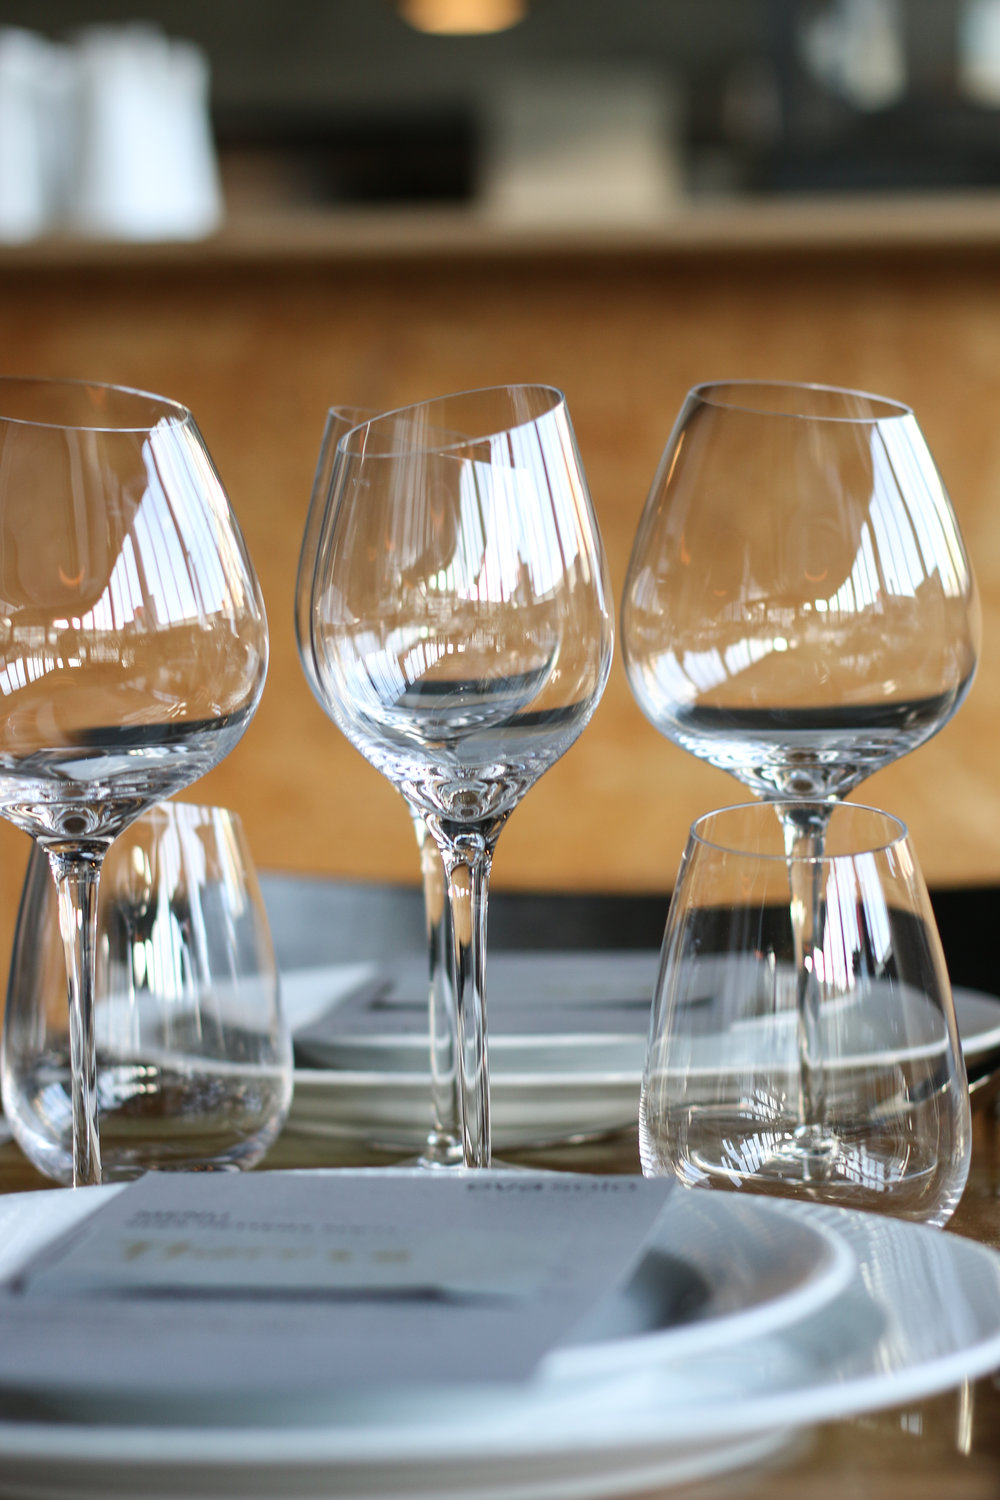 Dinner table photography with vine glasses and table serving for two. Features eva solo white wine and red winde glasses.